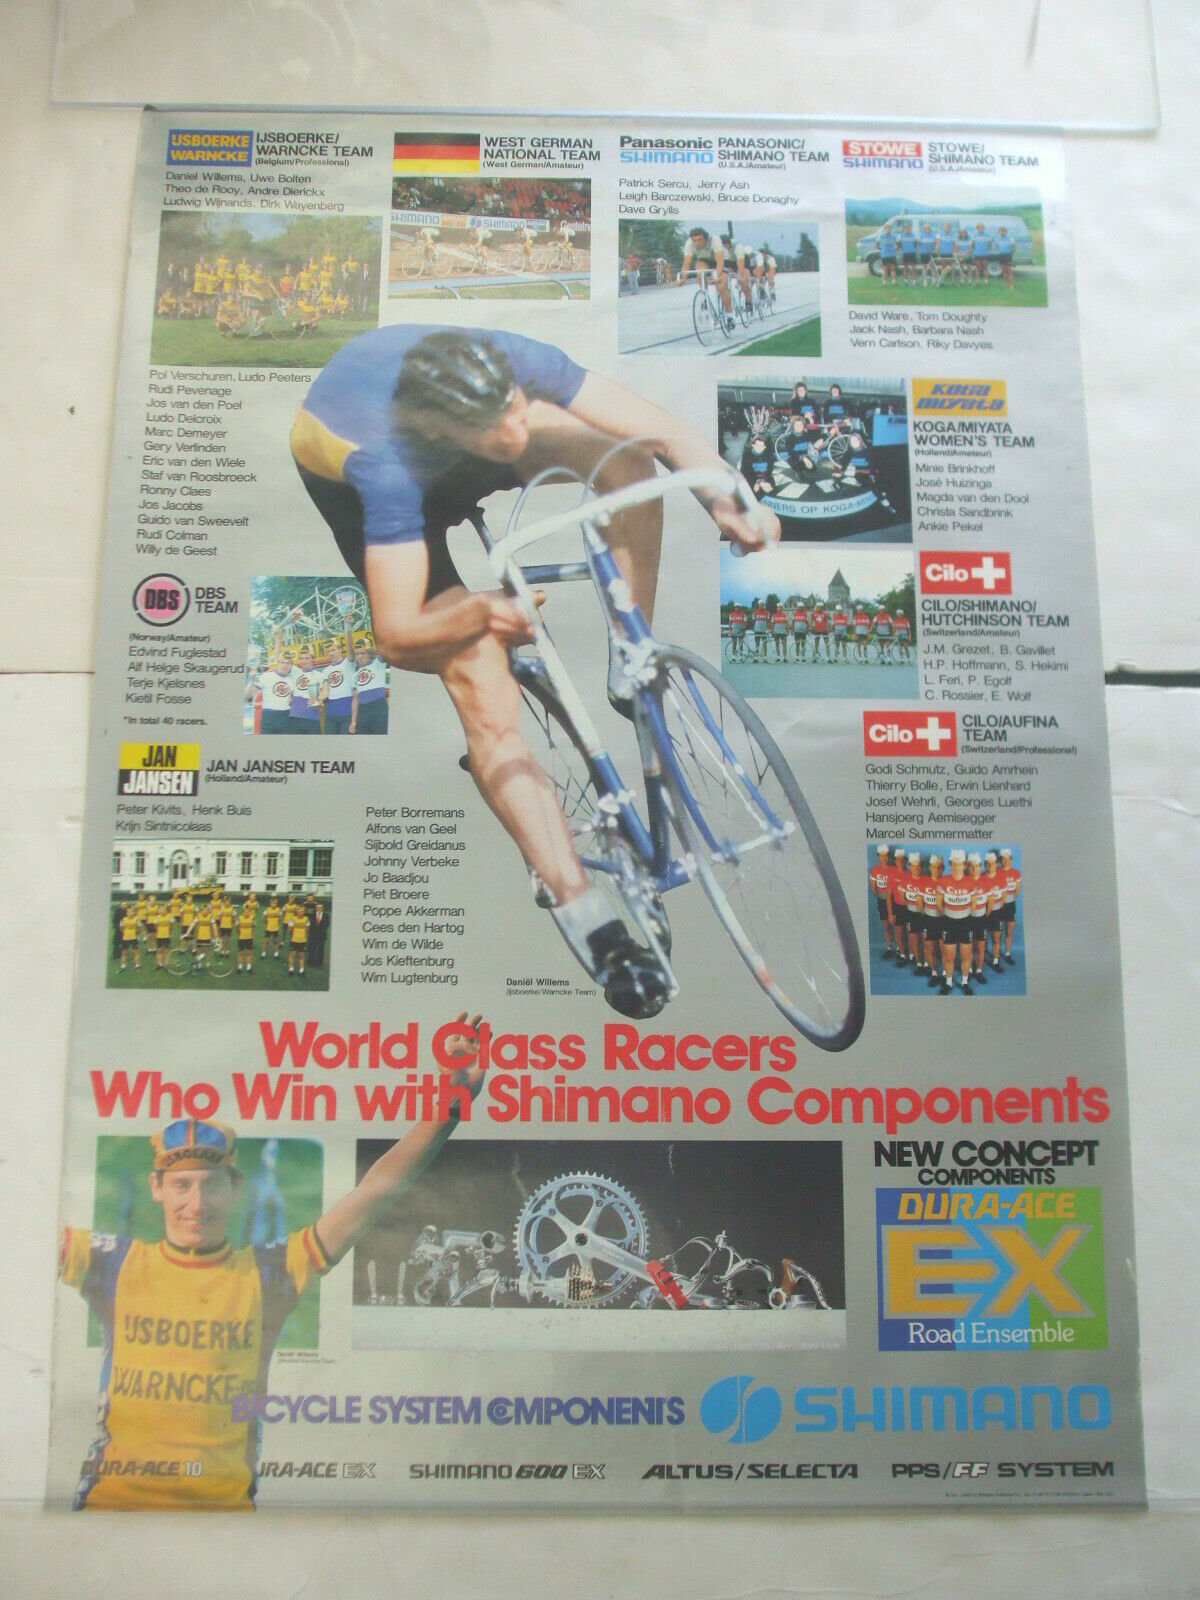 1980 Shimano Radfahren Components World Class Racer Teams & Willems Store Poster